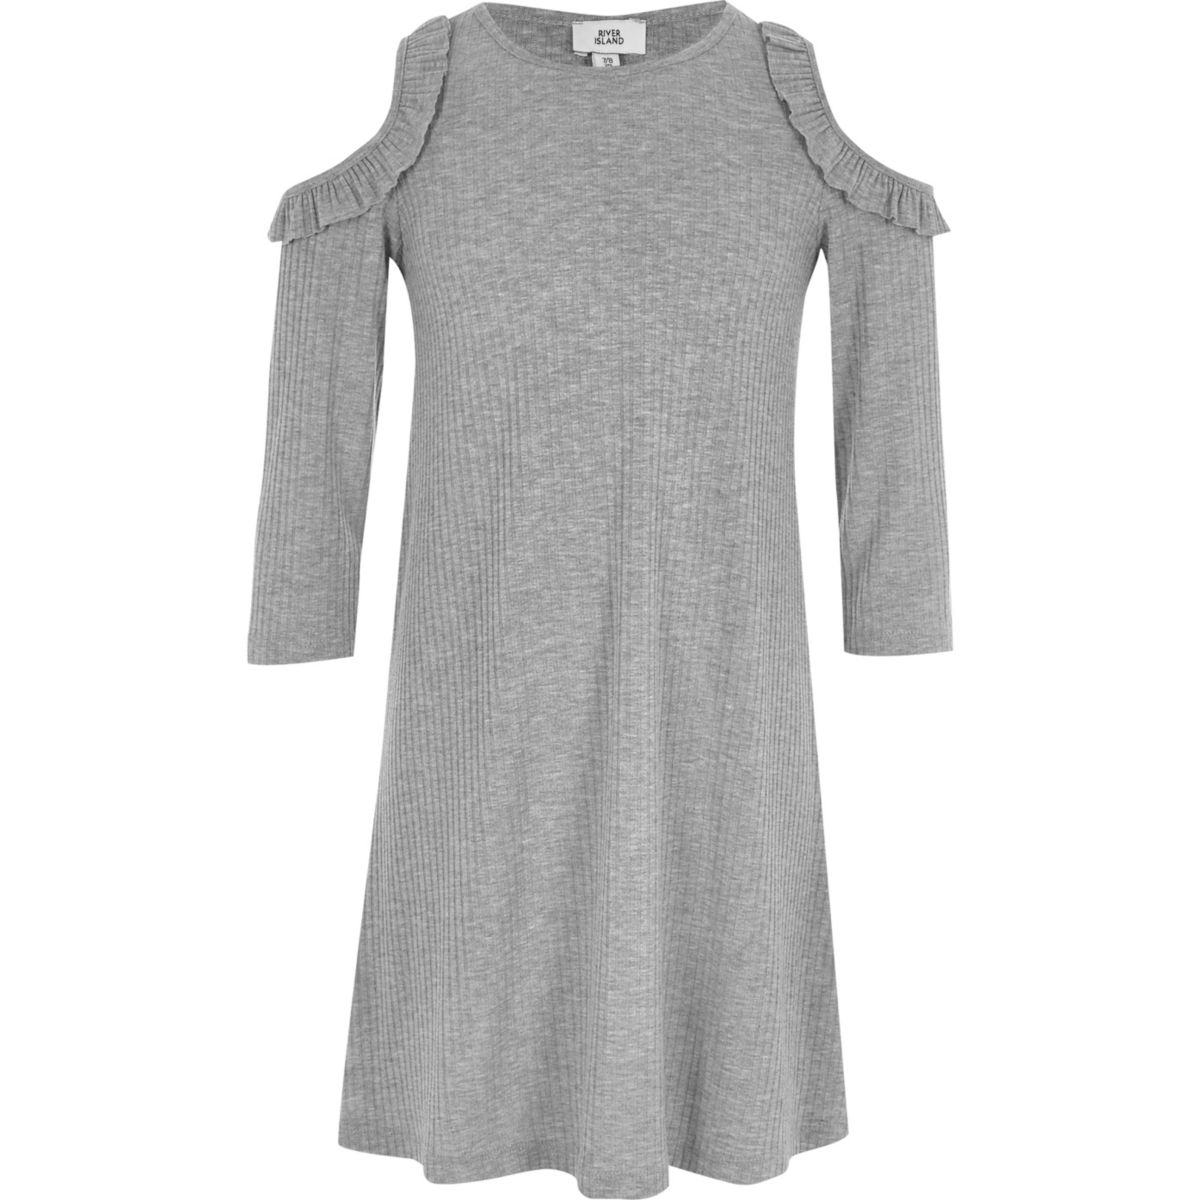 Girls grey ribbed cold shoulder swing dress